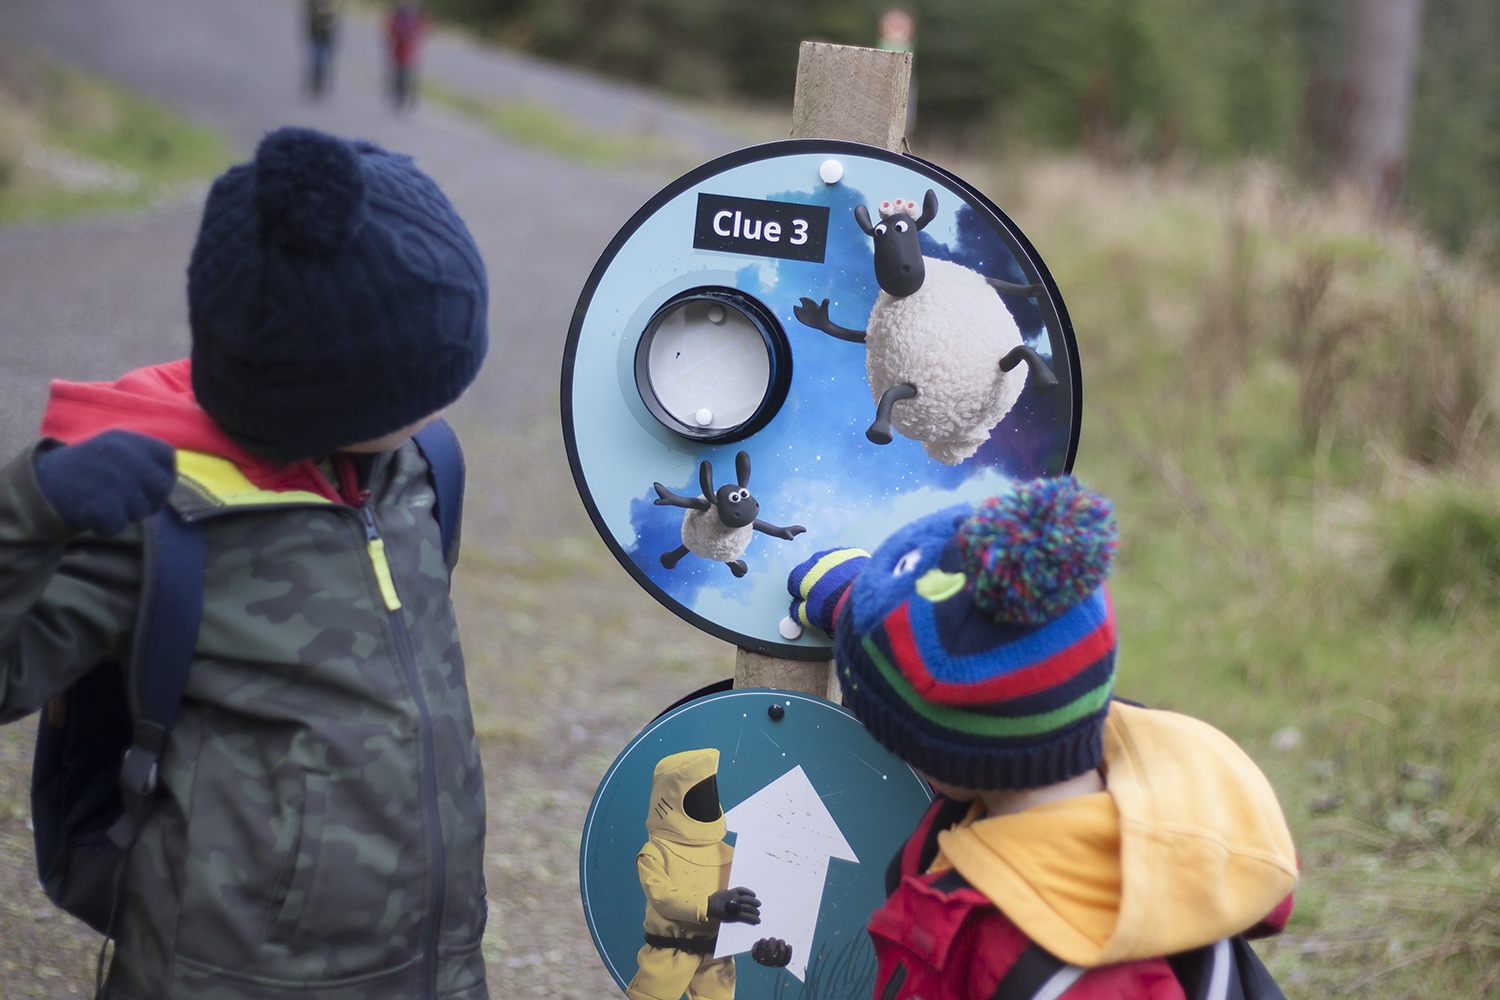 Two boys in knitted hats looking at a Farmageddon Glow Trail clue in Whinlatter Forest in the Lake District